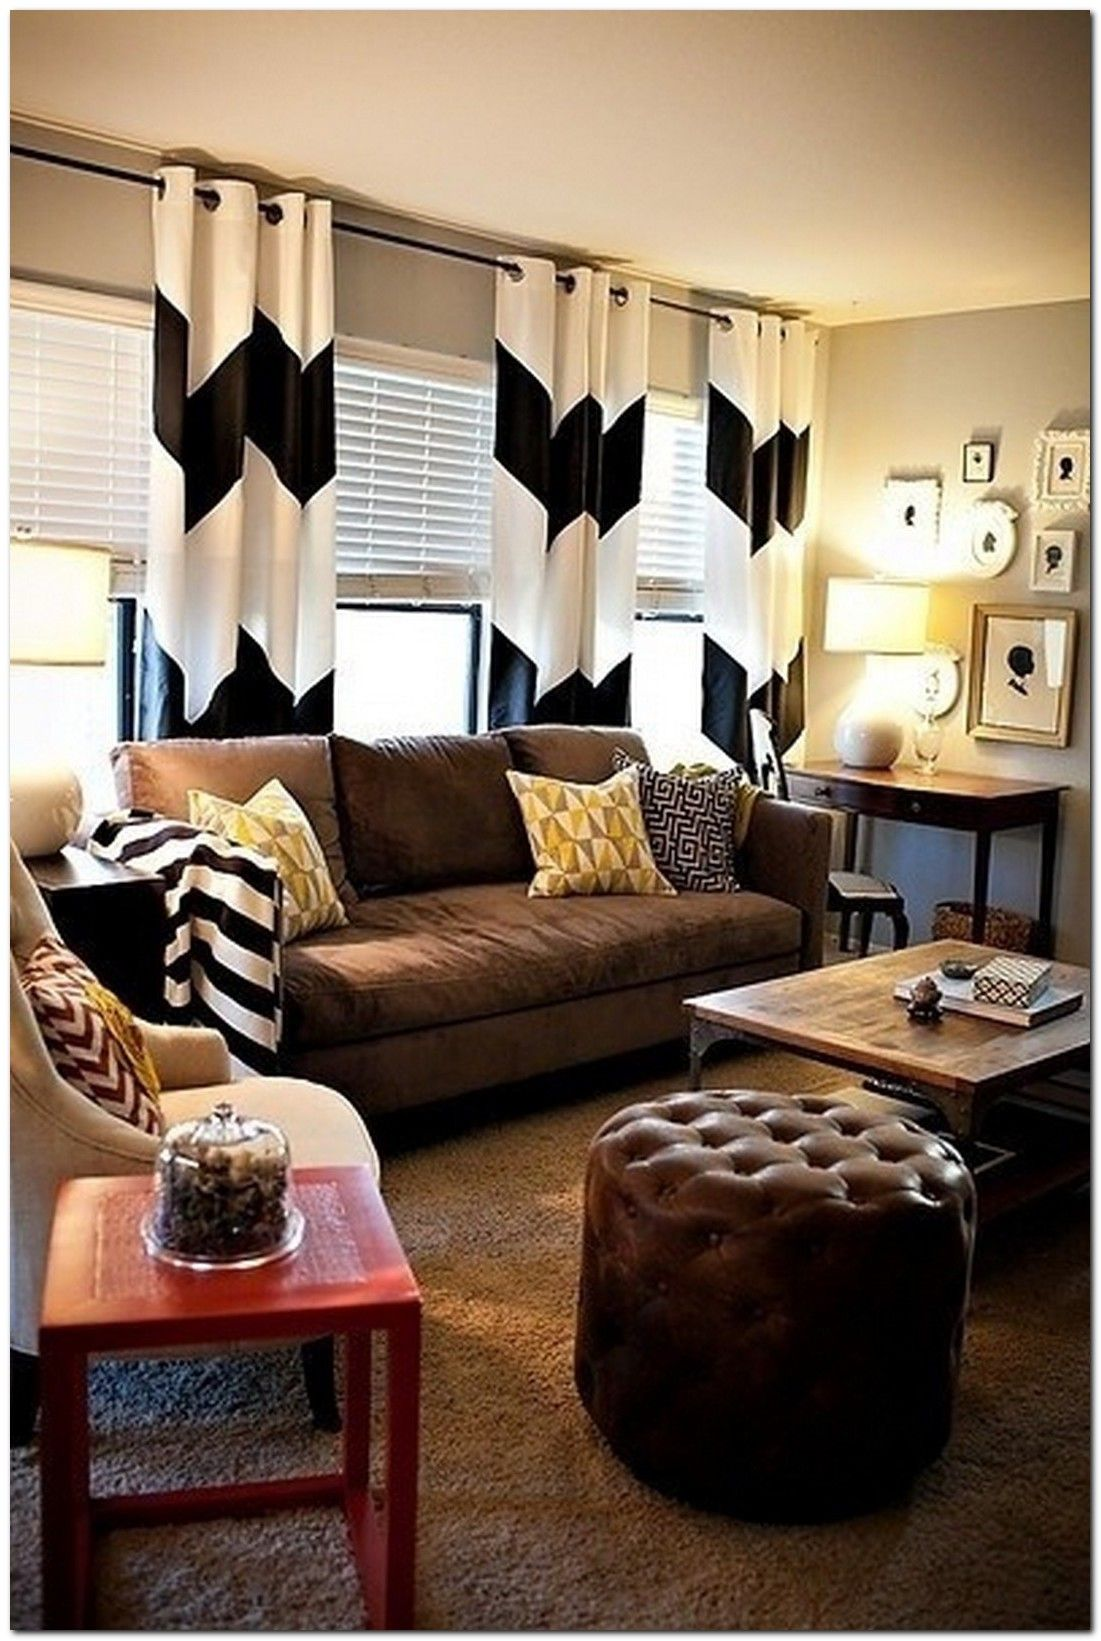 41++ Mens living room ideas on a budget info